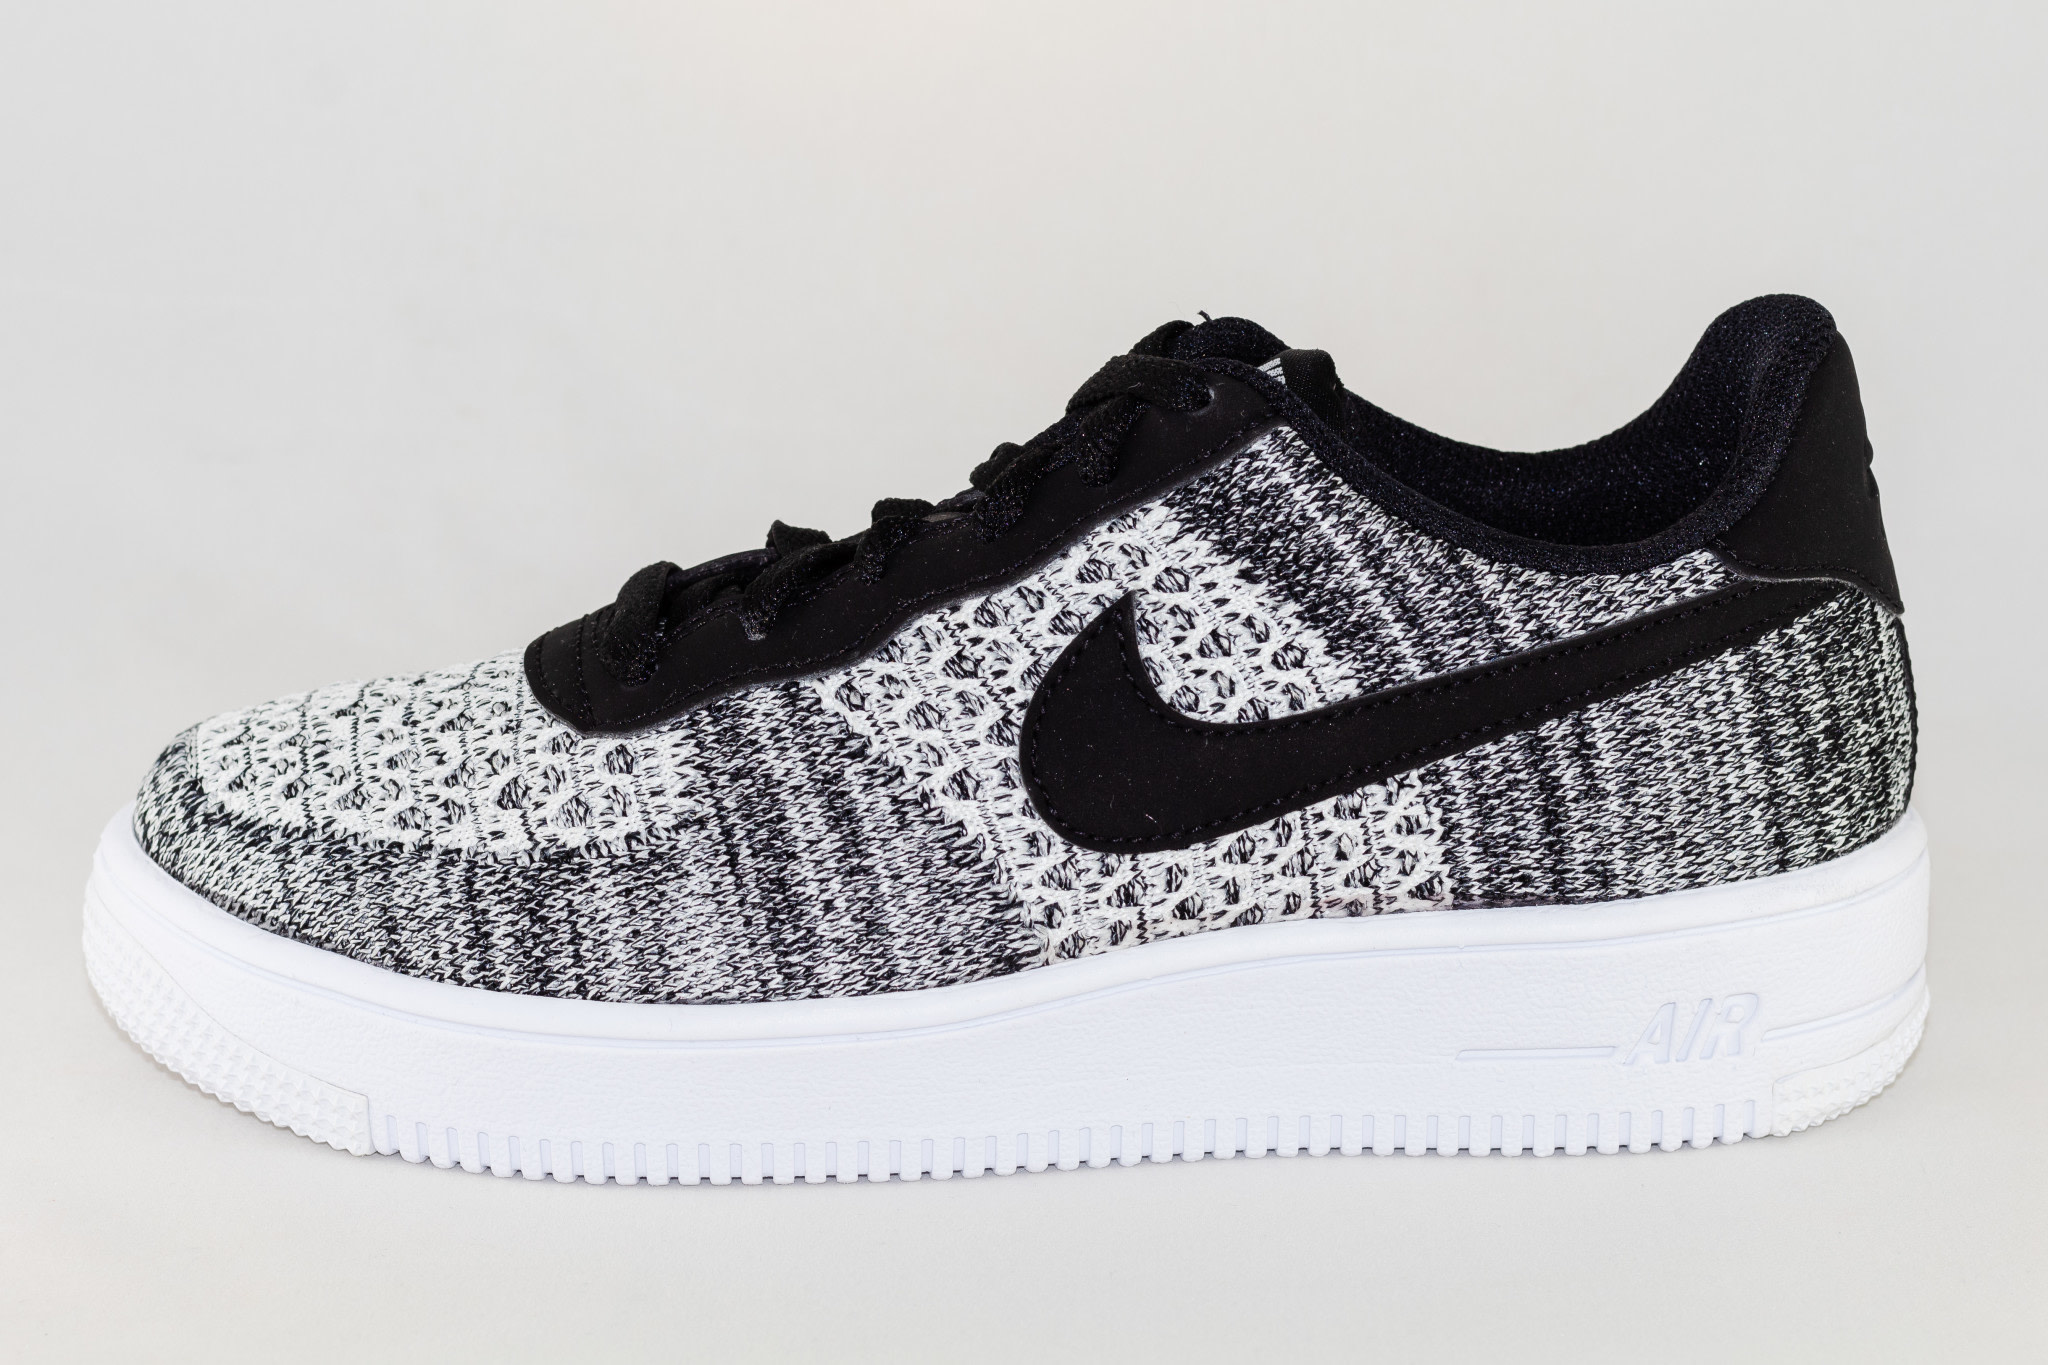 NIKE AIR FORCE 1 FLYKNIT 2.0 Black/ Pure Platinum- Black